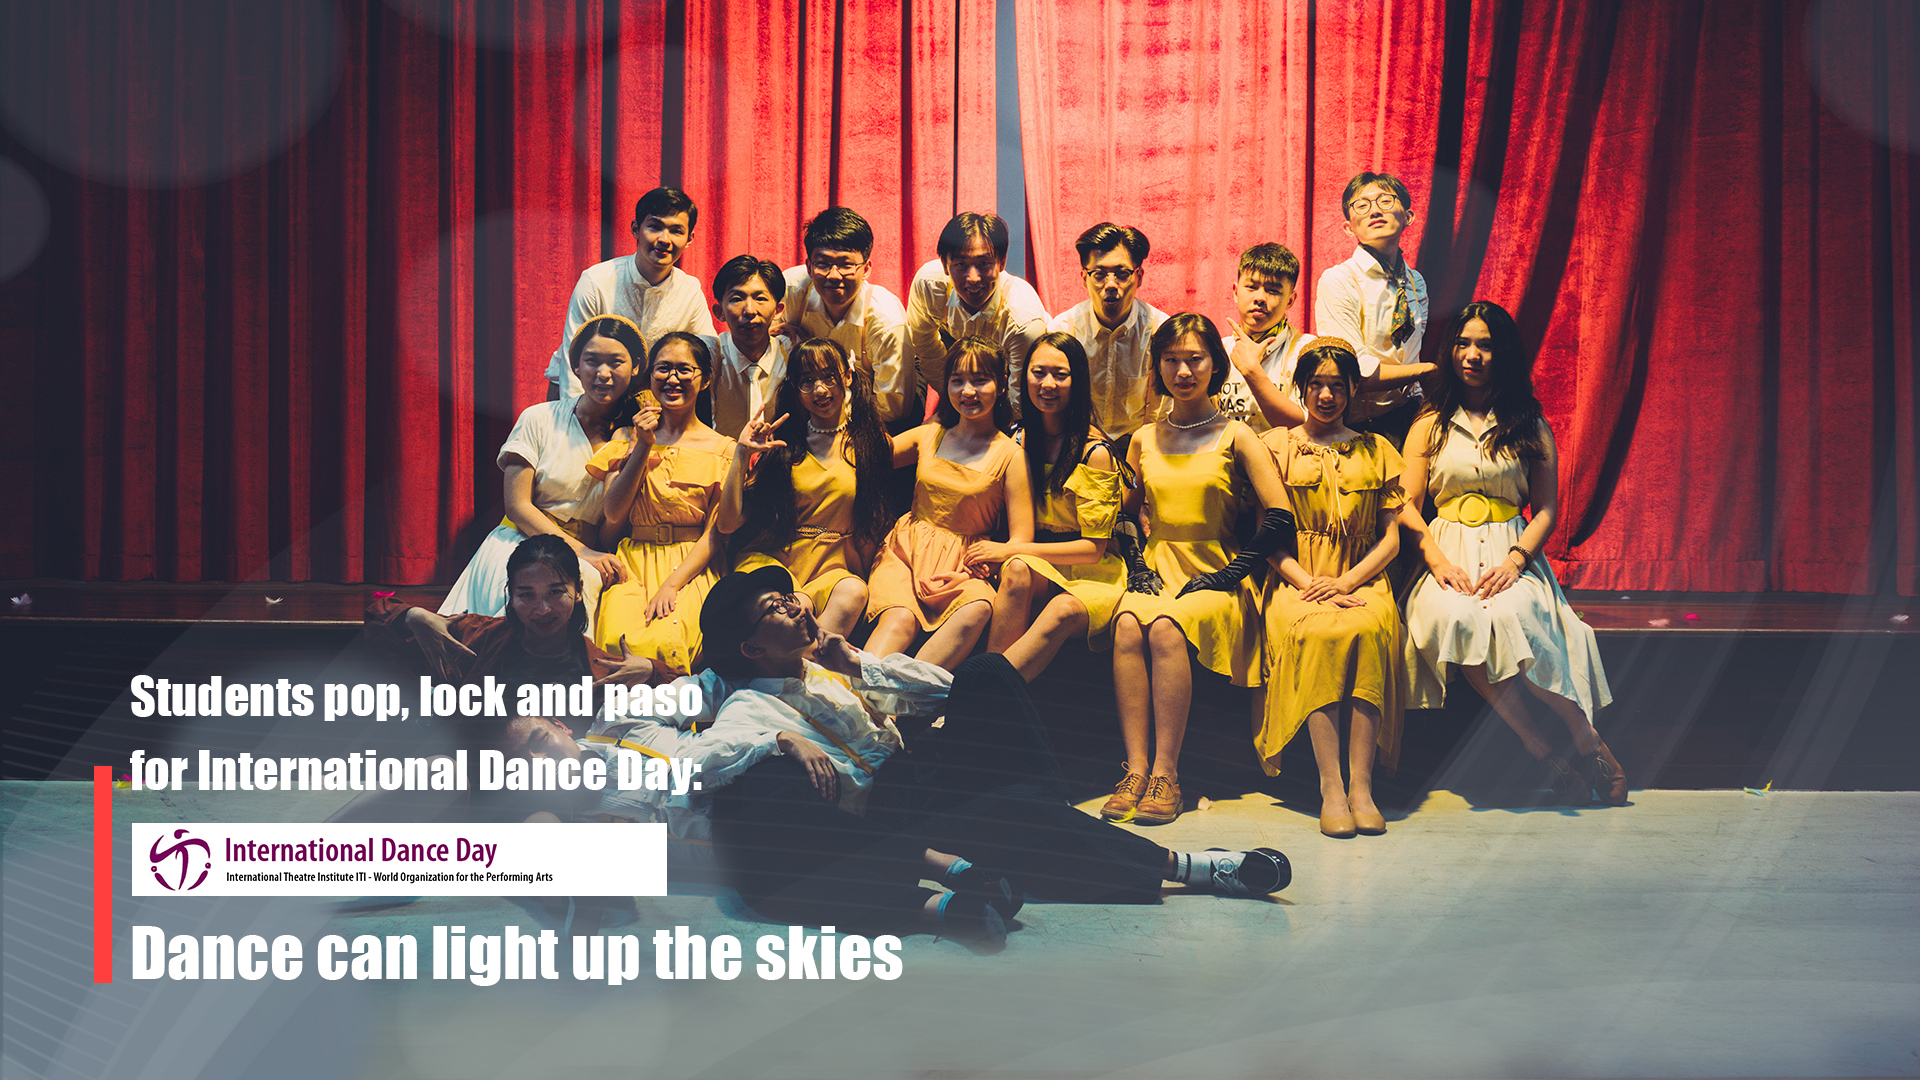 Students pop, lock and paso for International Dance Day: Dance can light up the skies